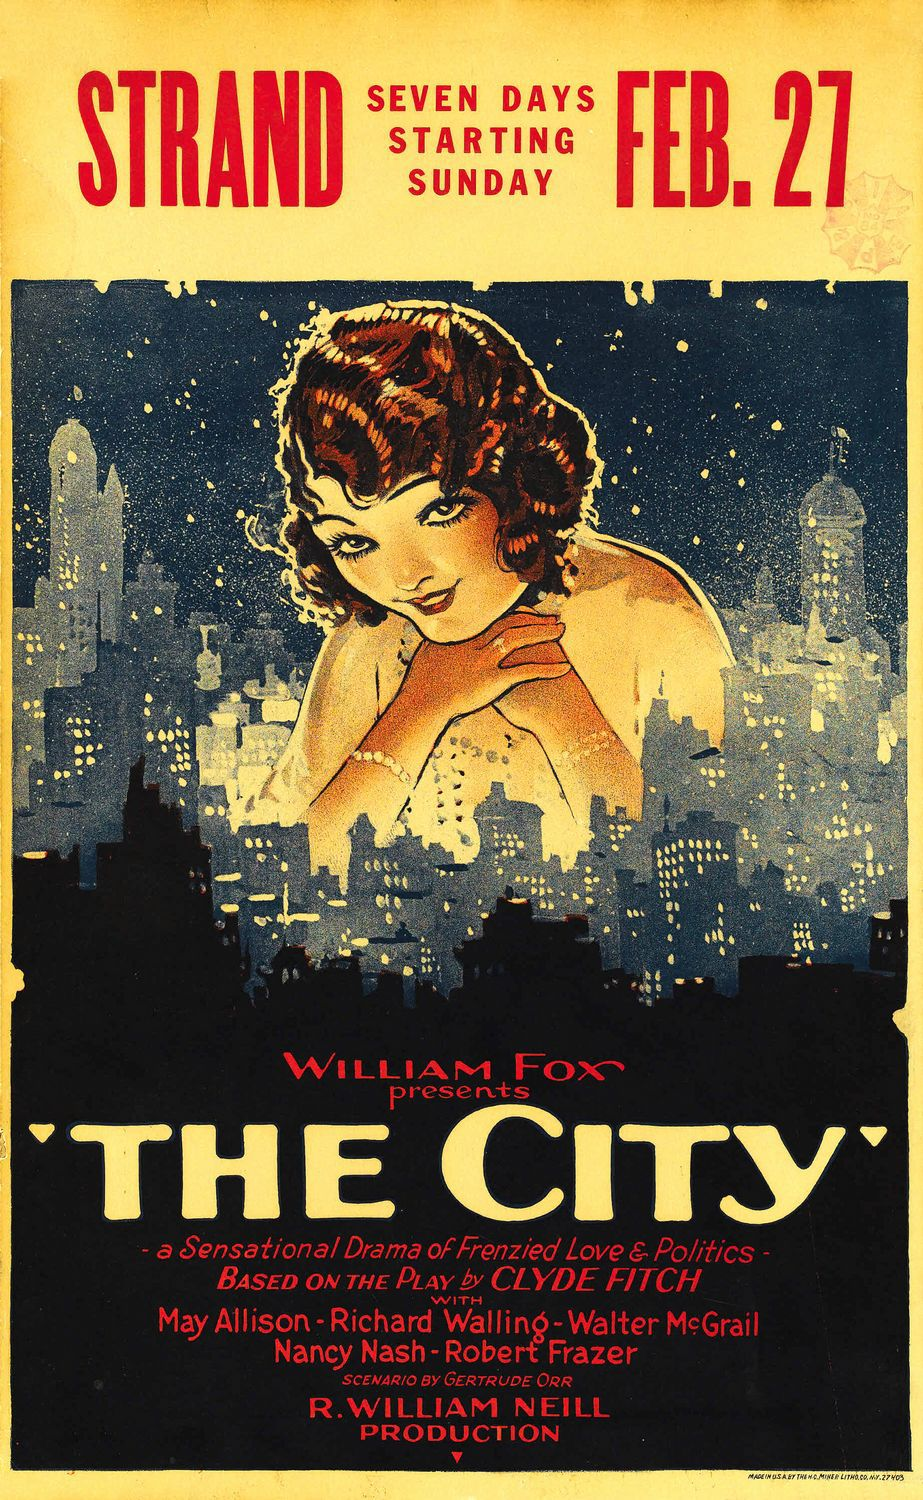 The City (1926) by Roy William Neill - Cast: May Allison, Richard Walling, Walter McGrail, Nancy Nash, Robert Frazer, George Irving, Lillian Elliott - old classic film poster cult